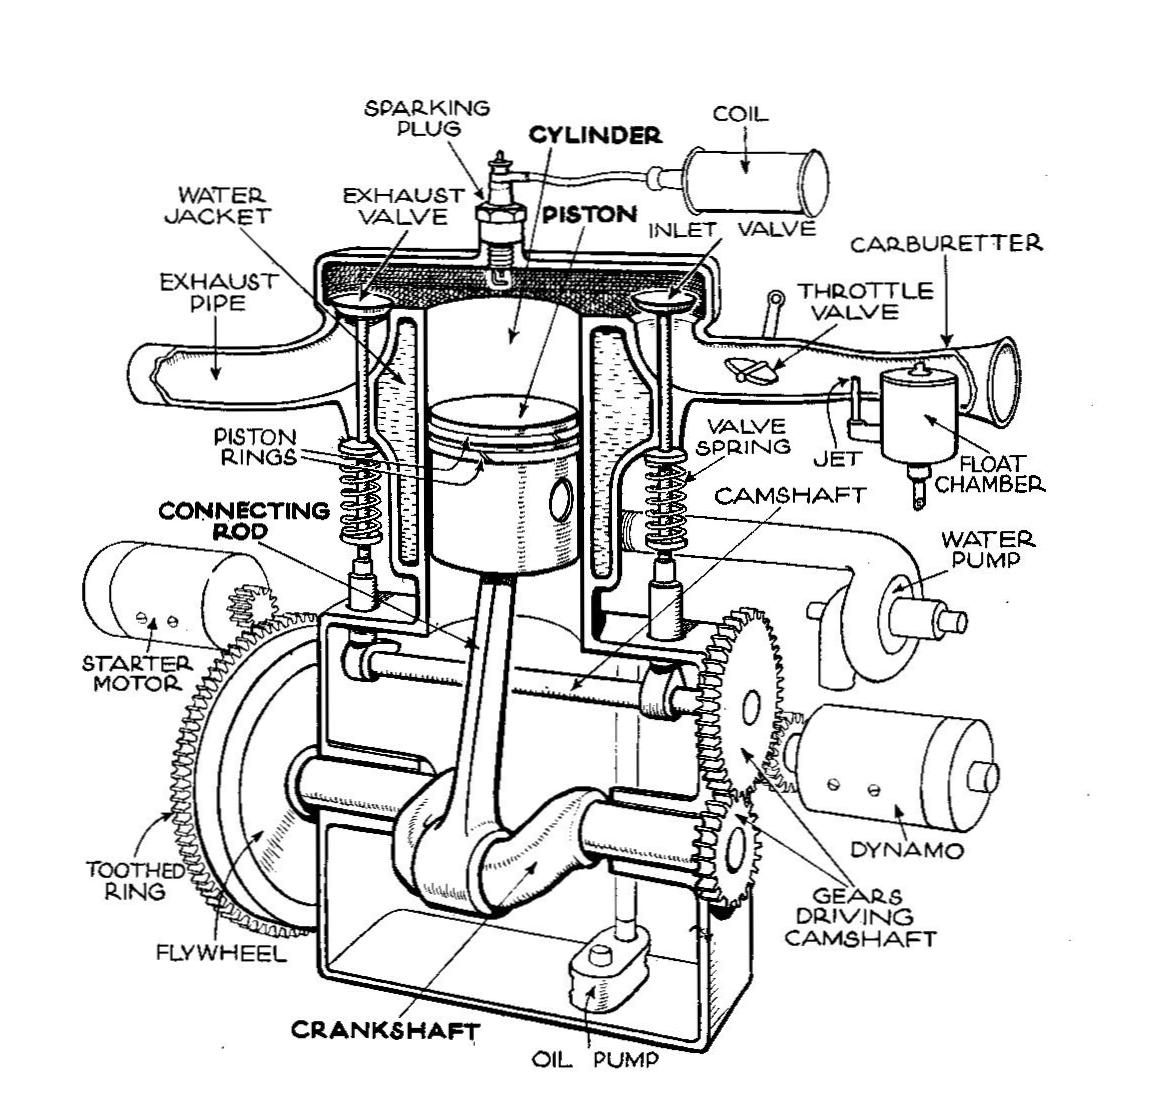 Wiring Diagram For Steam Iron further Tractor Clipart Black And White as well Kleiner Traktor together with John Deere  bine besides 64317100903932940. on toy lawn tractors